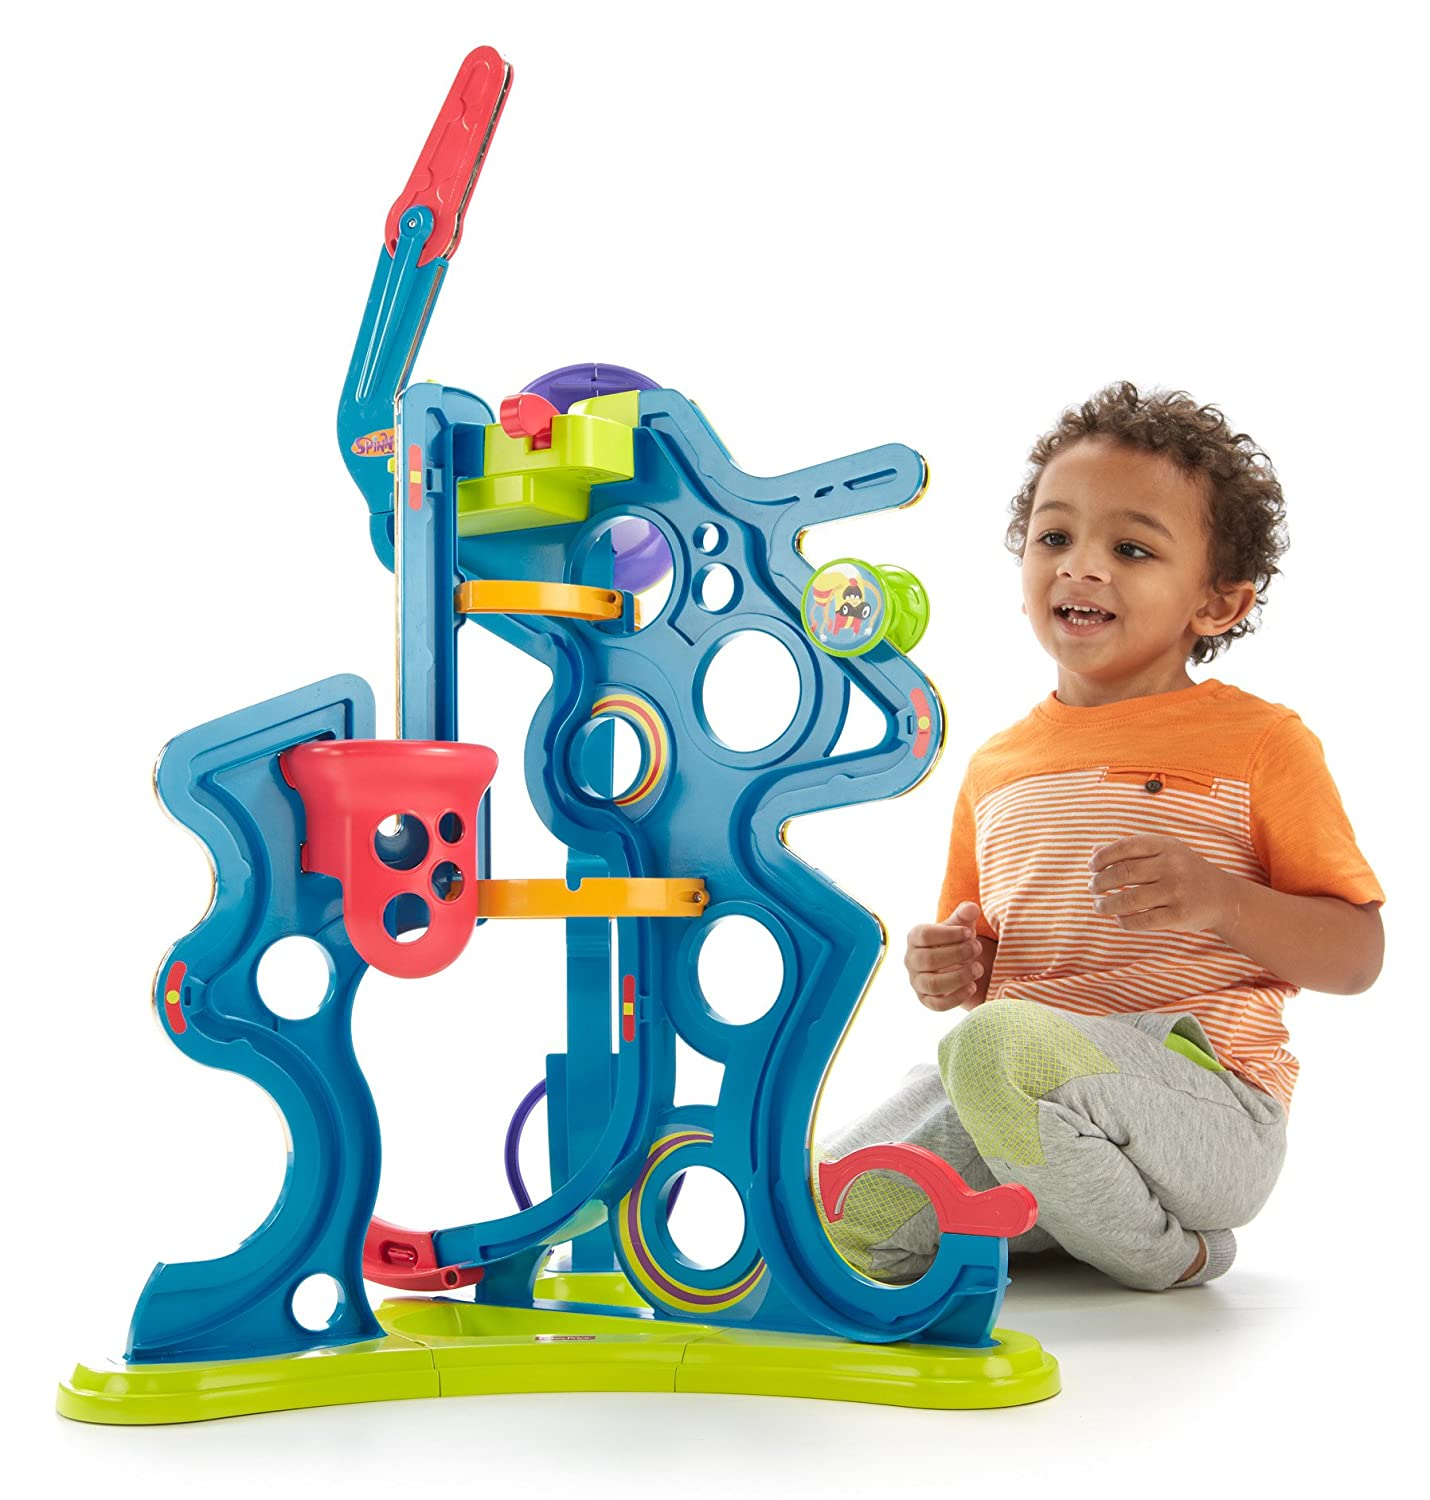 Great Toys For Three Year Old : Best gifts for year old boys in itsy bitsy fun